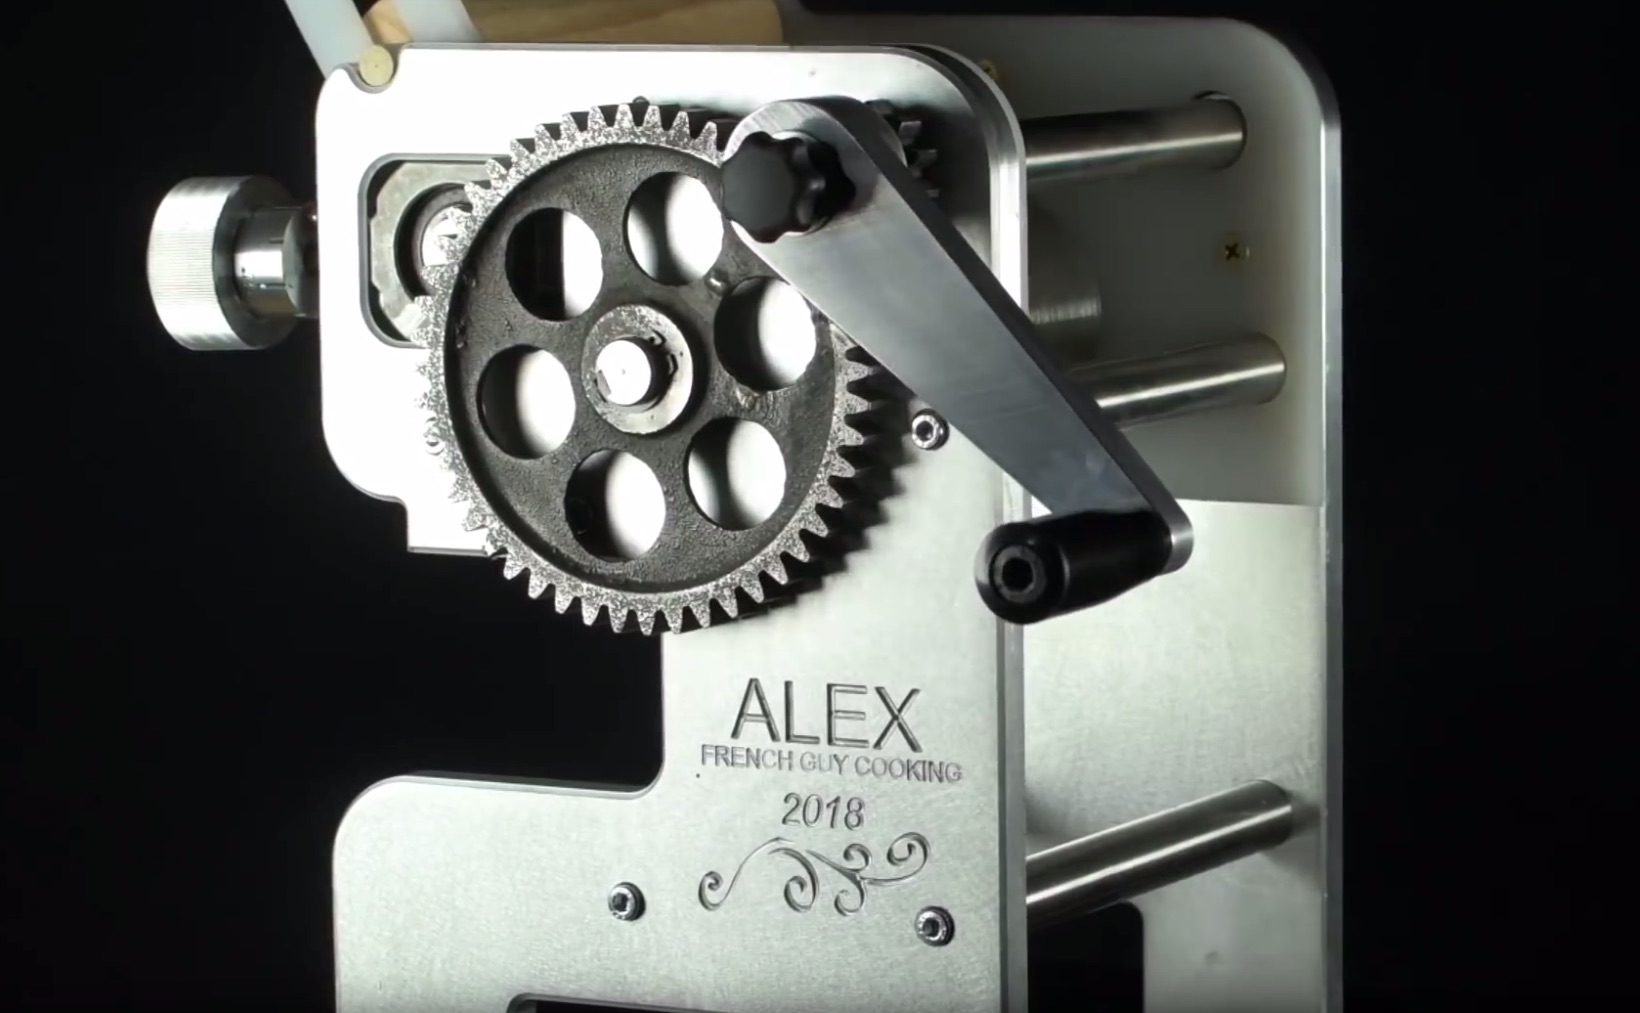 This Old Tony Builds a Pasta Machine for Alex French Guy Cooking